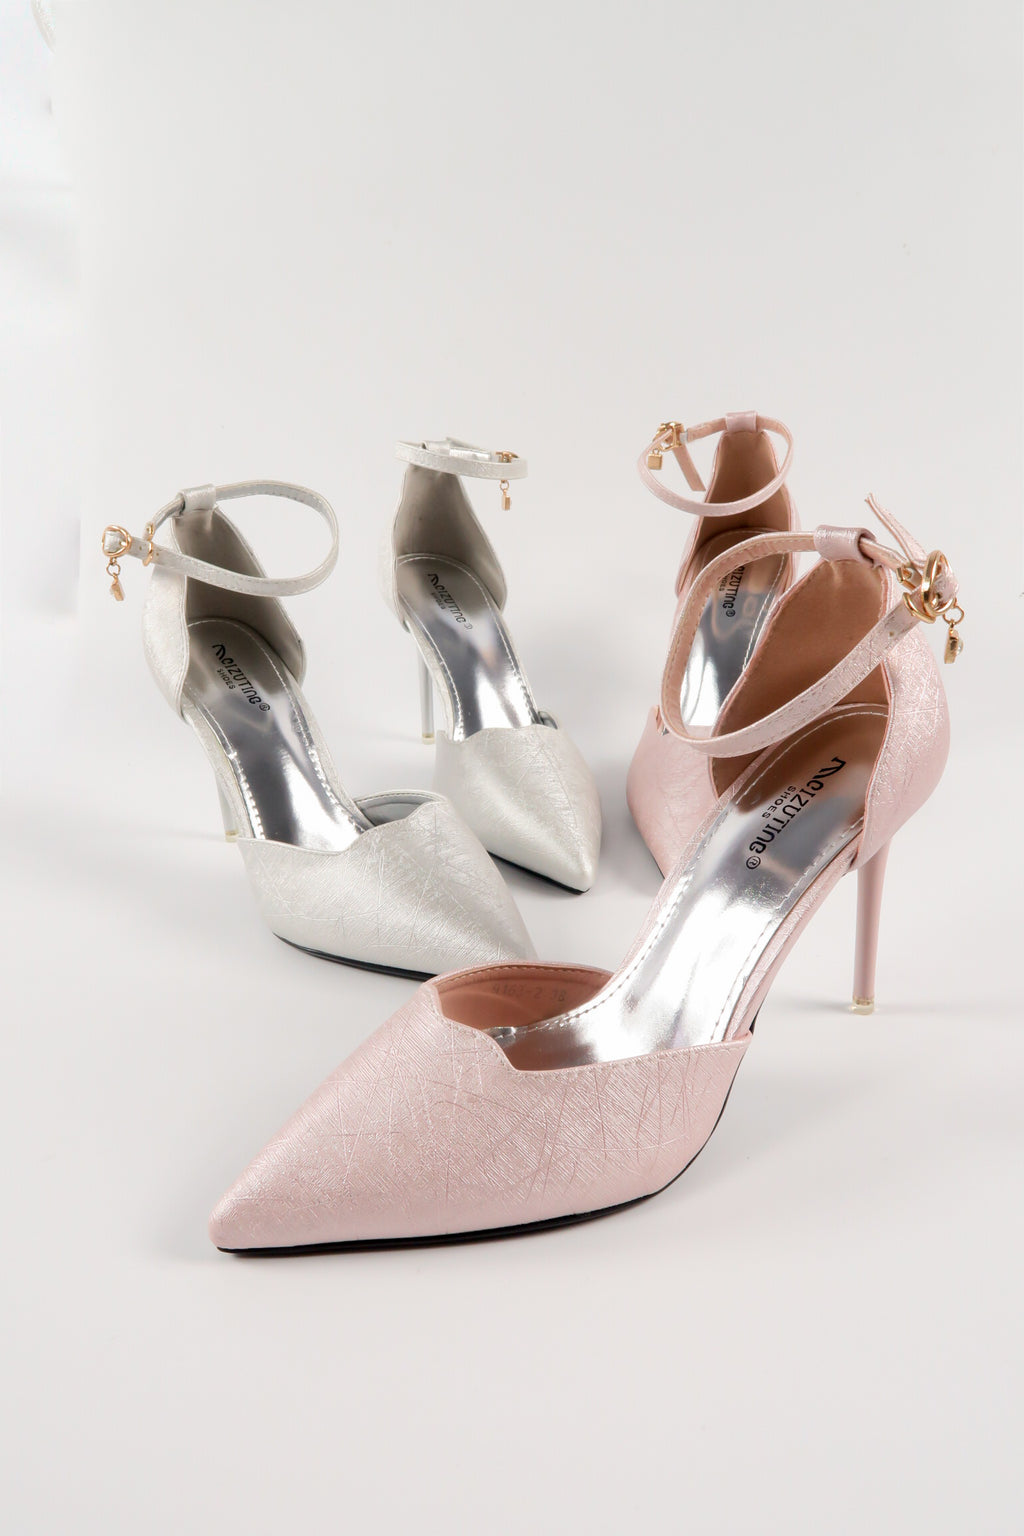 Modern Ankle Strap High Heels Pumps Shoes